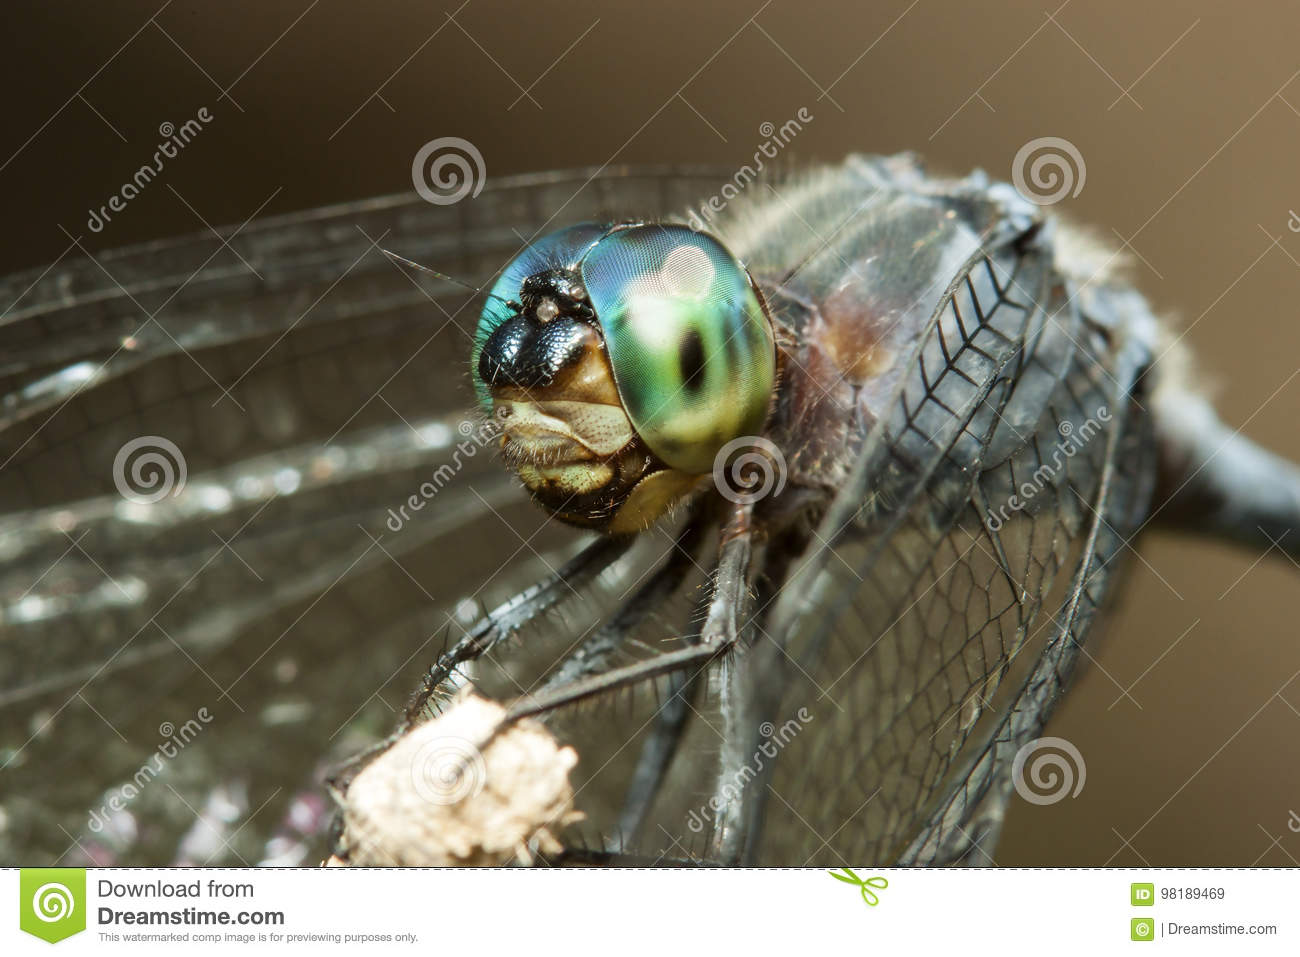 Blue dragonfly with green eyes macro portrait on a stick